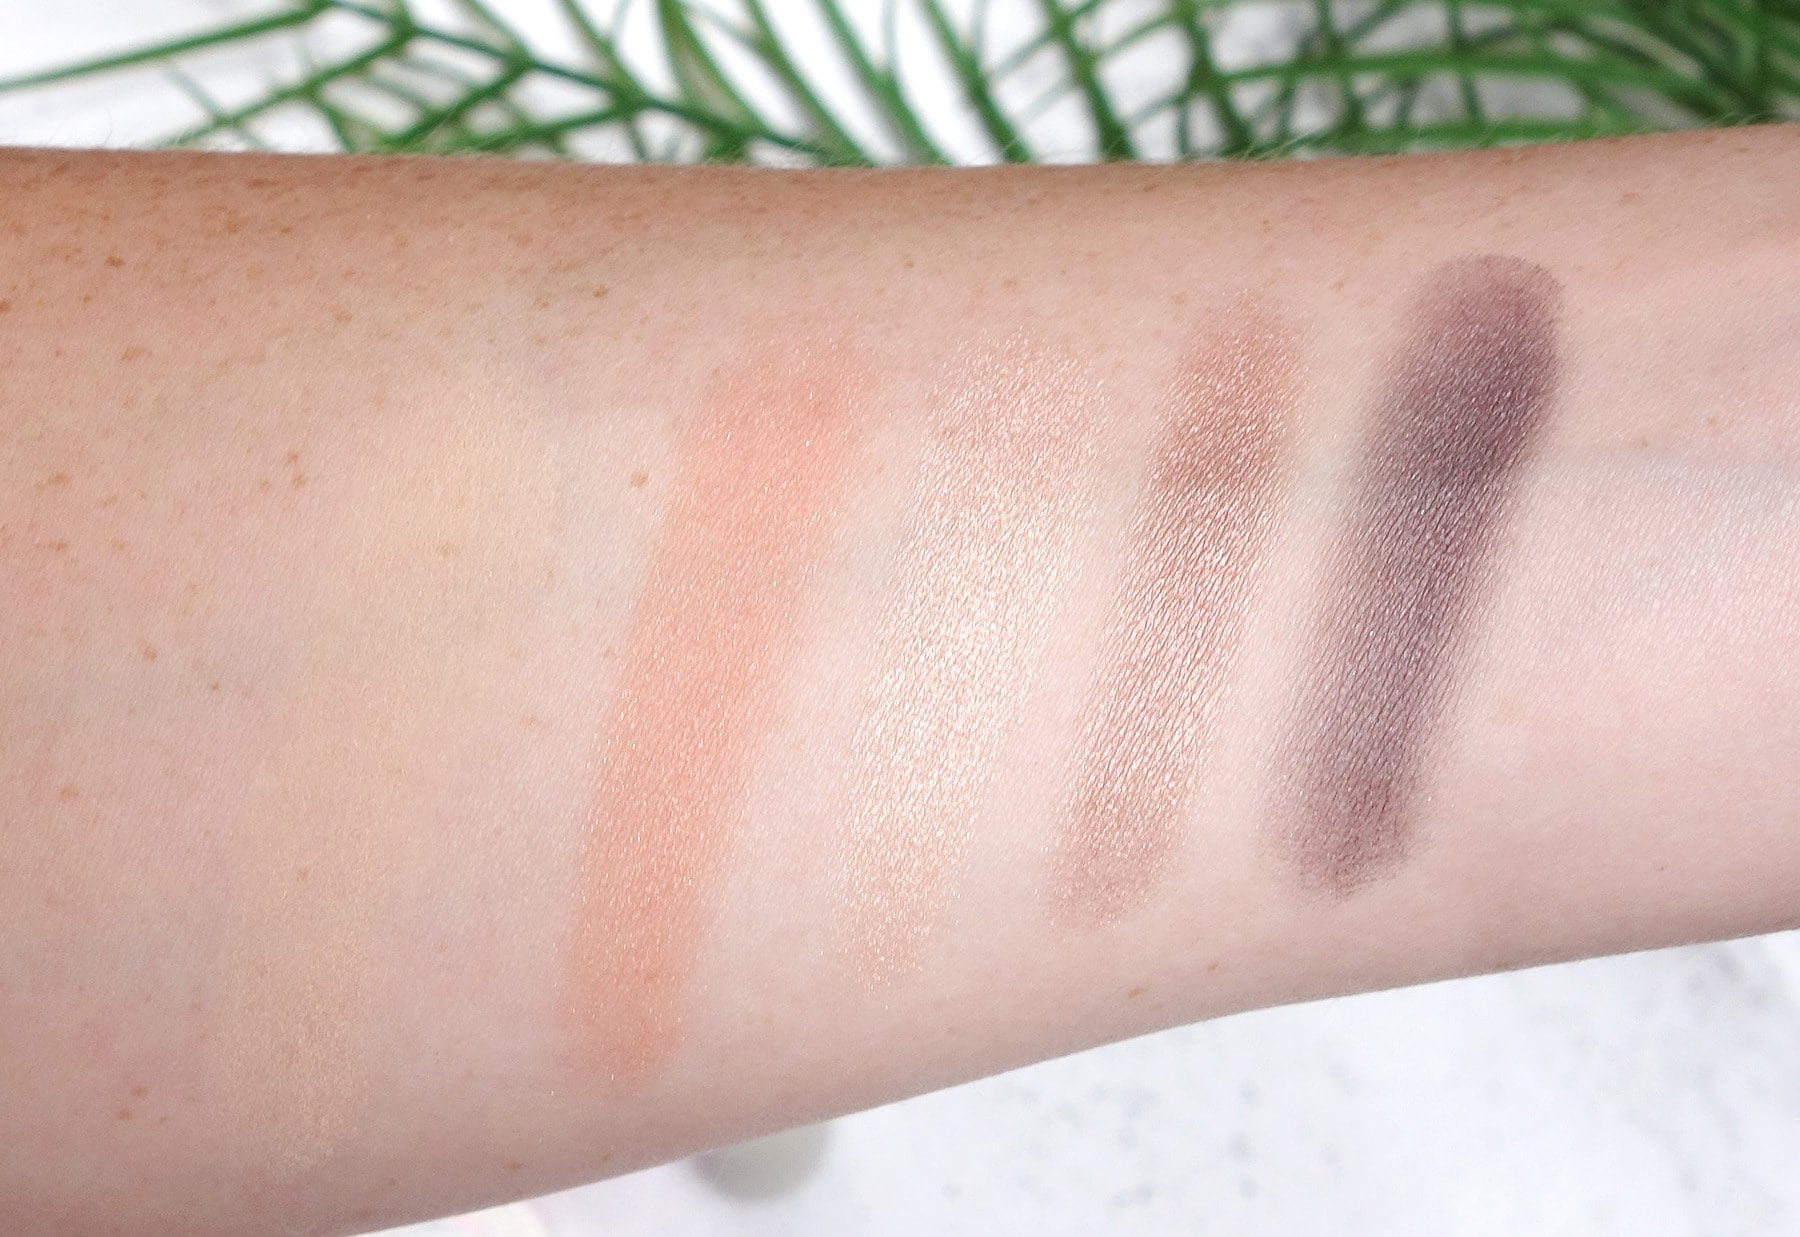 Jane Iredale Snap Happy Makeup Kit swatches